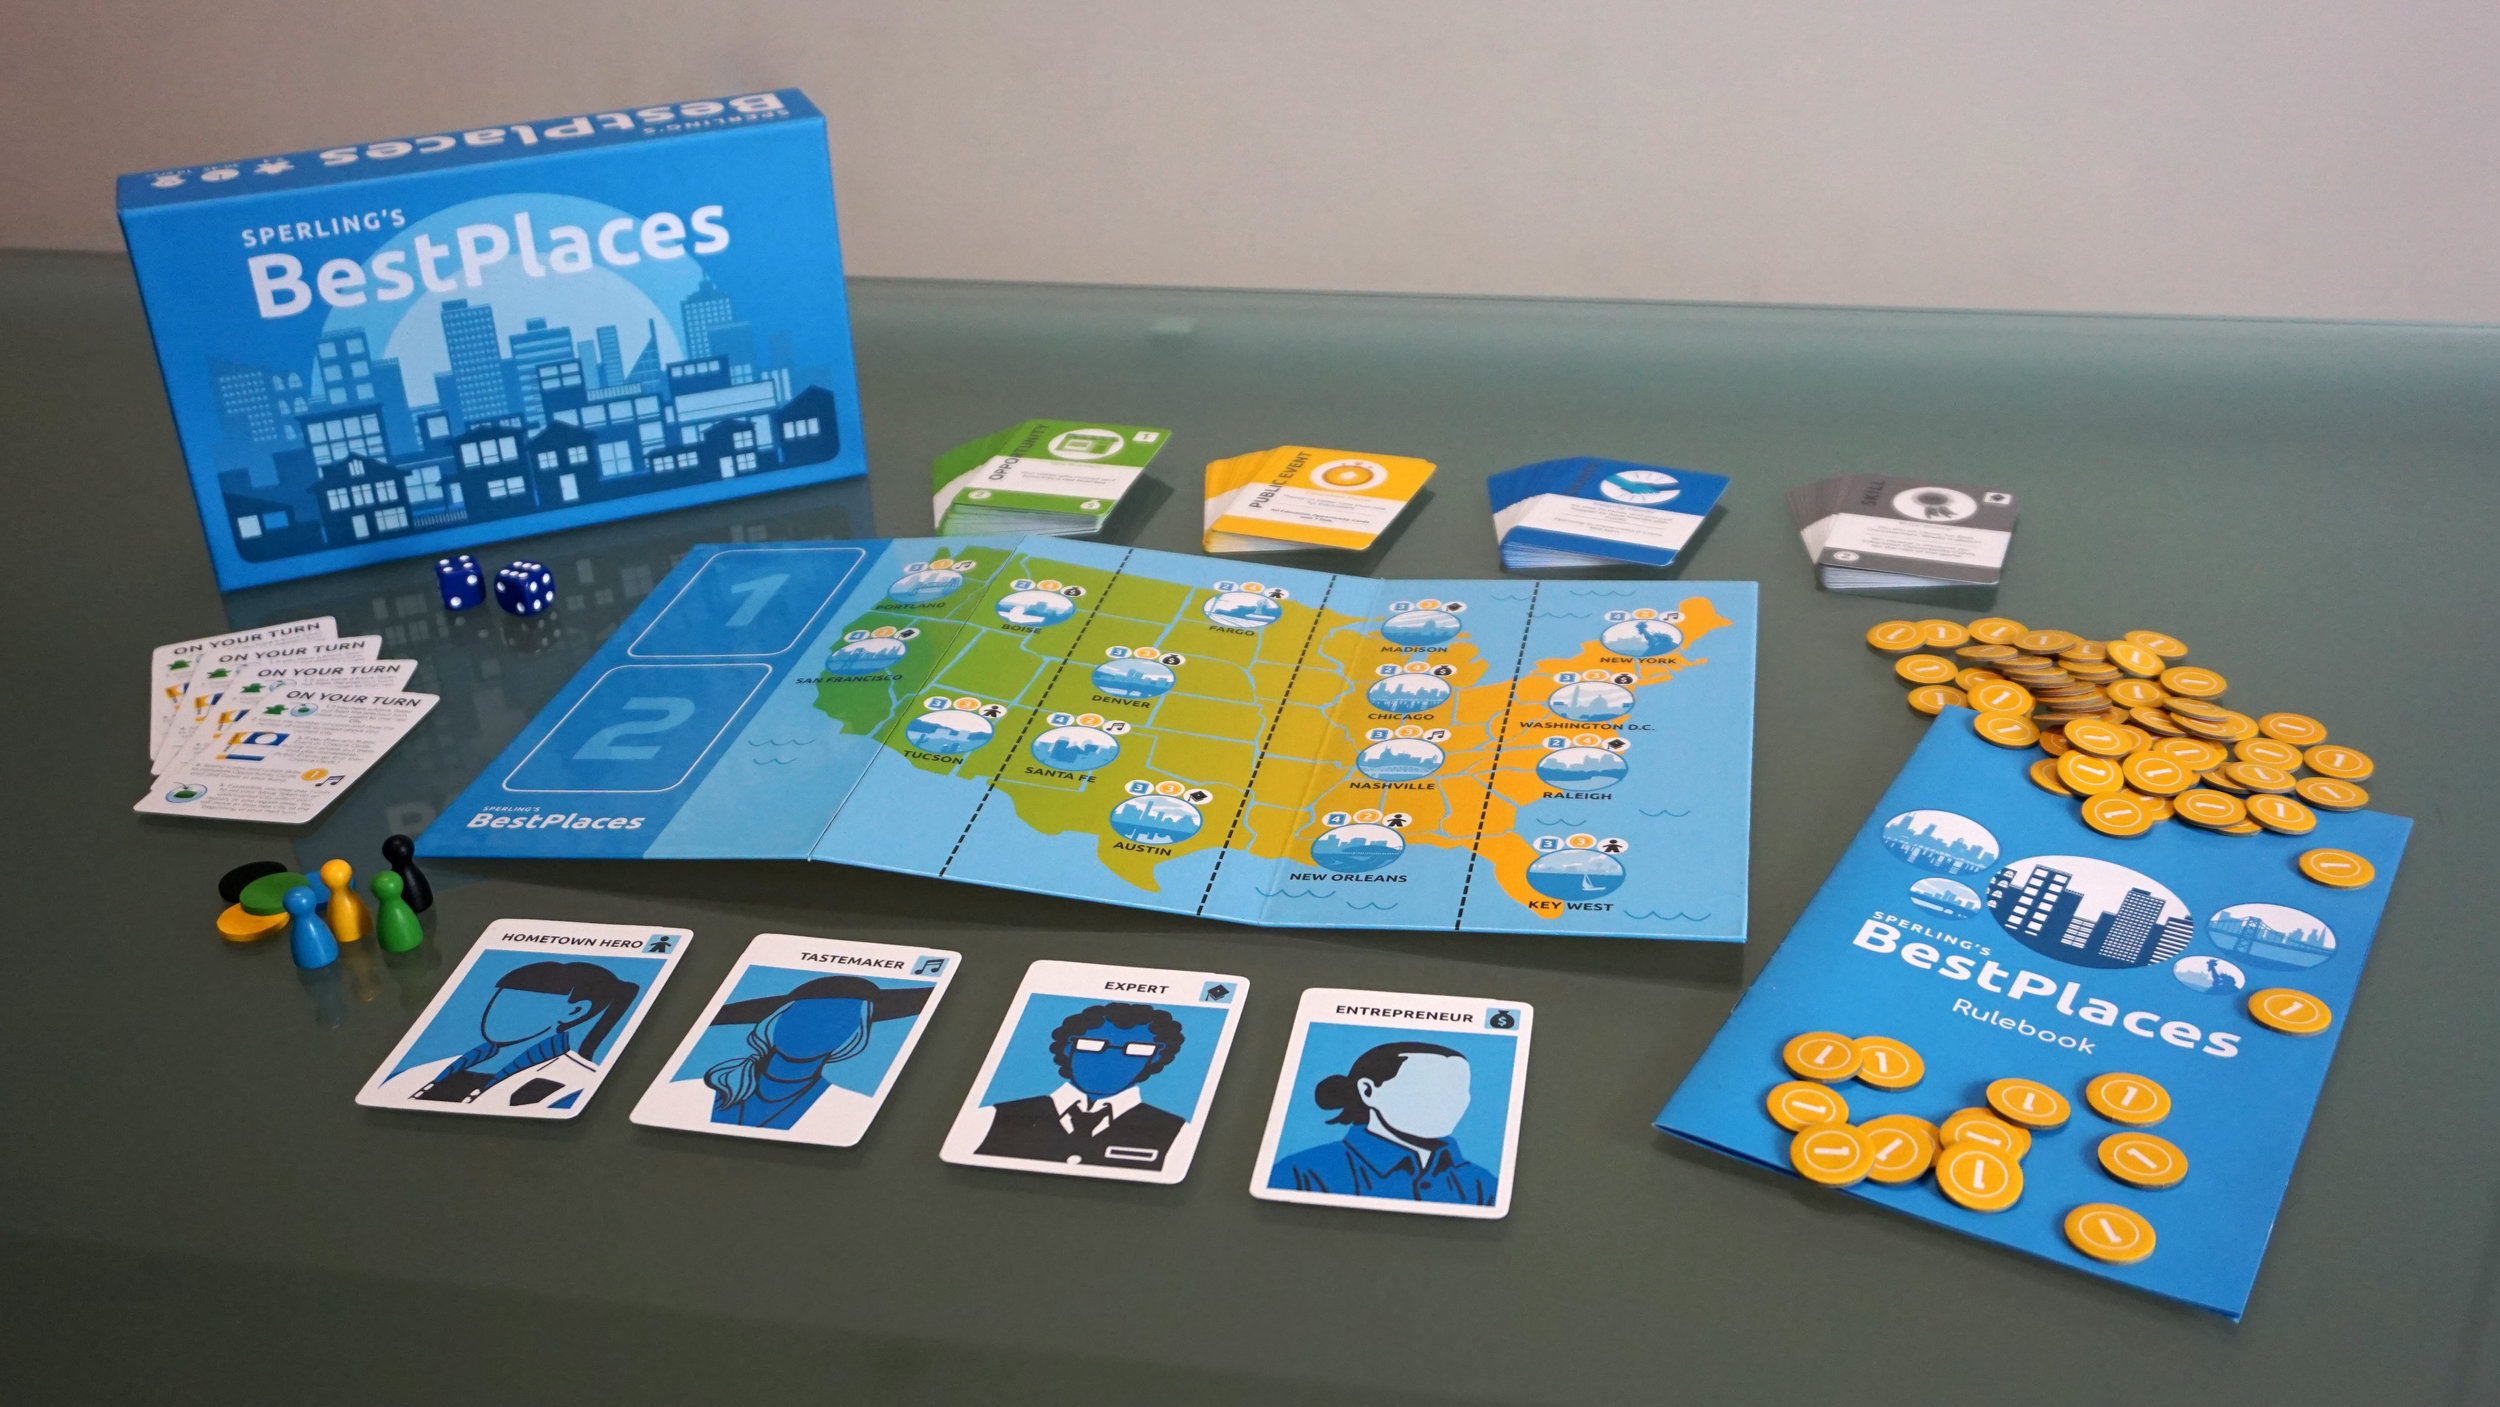 Best Places    A board game developed in partnership with Sperling's Best Places, featuring game mechanics, art, and statistics emblematic of the brand as a resource for data on U.S. cities and their living situations.